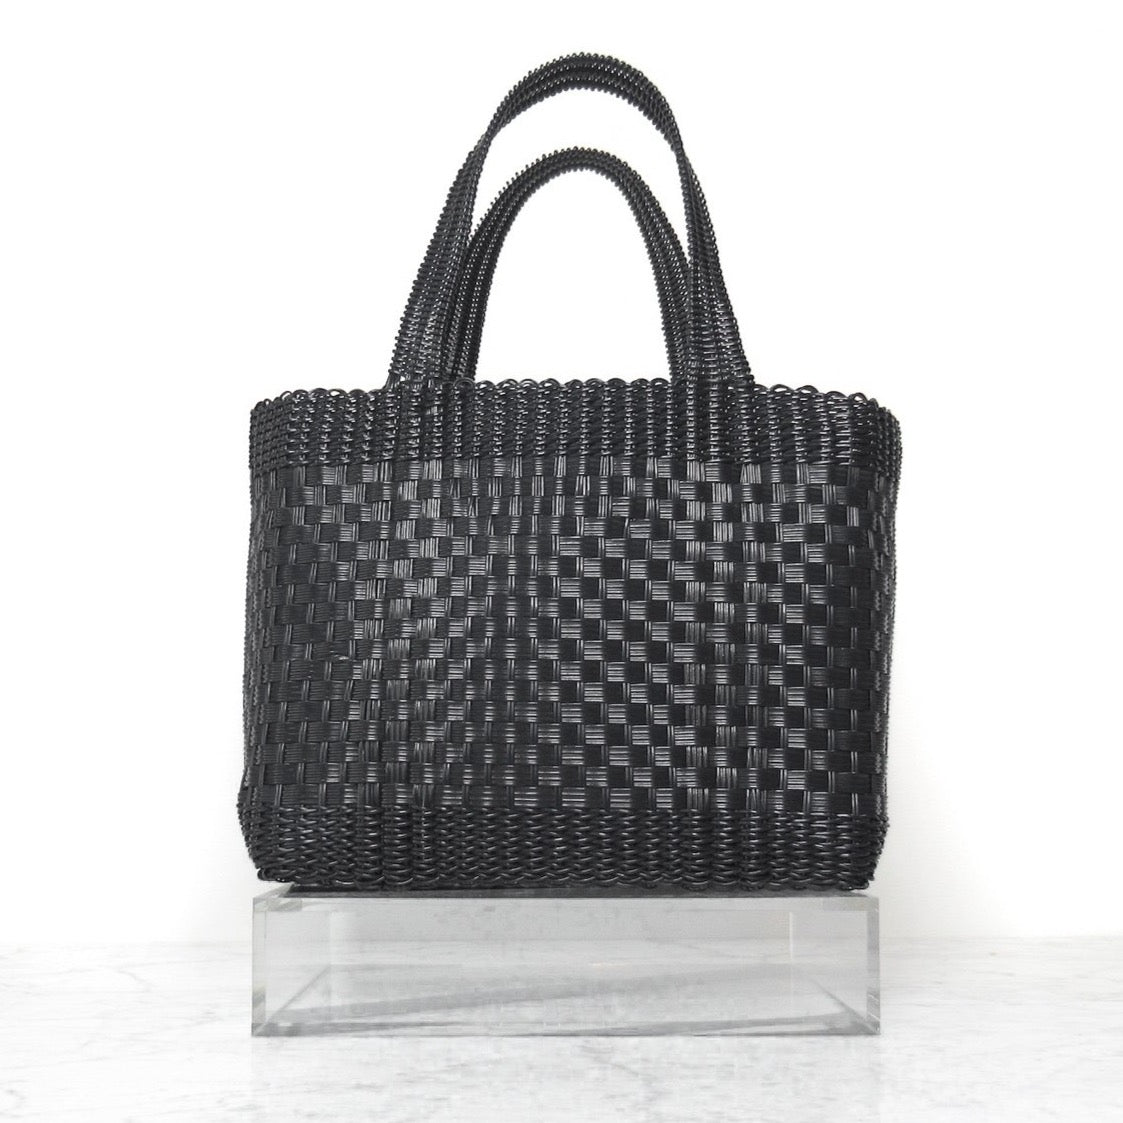 Jet Black Day-to-Day Tote